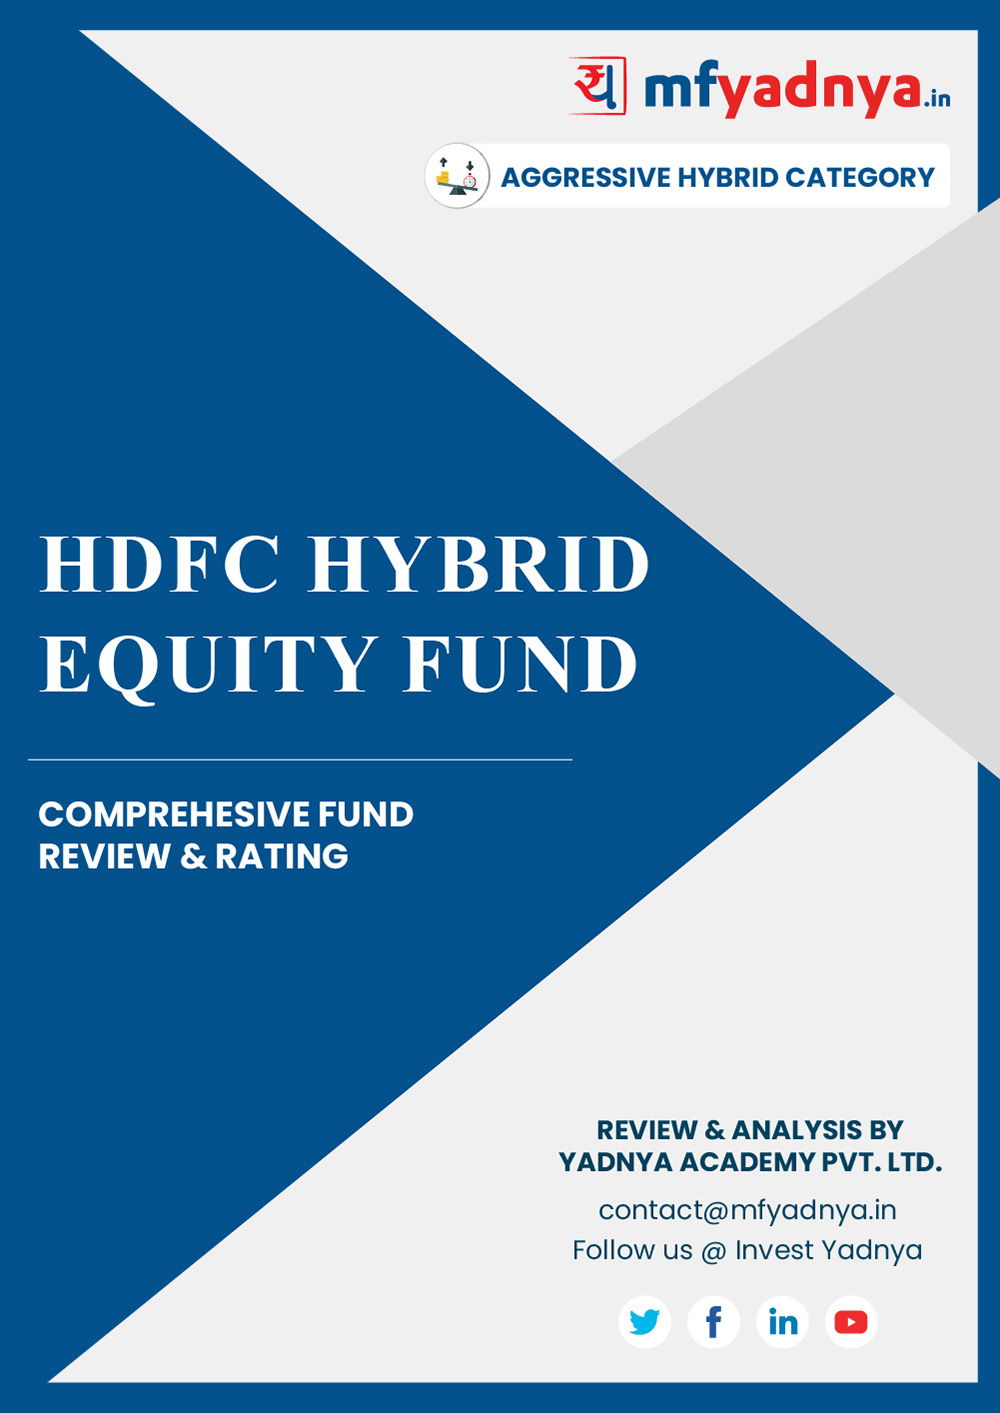 Aggressive Hybrid Category Review - 'HDFC Hybrid Equity Fund'. Most Comprehensive and detailed MF review based on Yadnya's proprietary methodology of Green, Yellow & Red Star. Detailed Analysis & Review based on Feb 29th, 2020 data. Review also gives you the historical trend of the performance which will show fund's performance consistency.